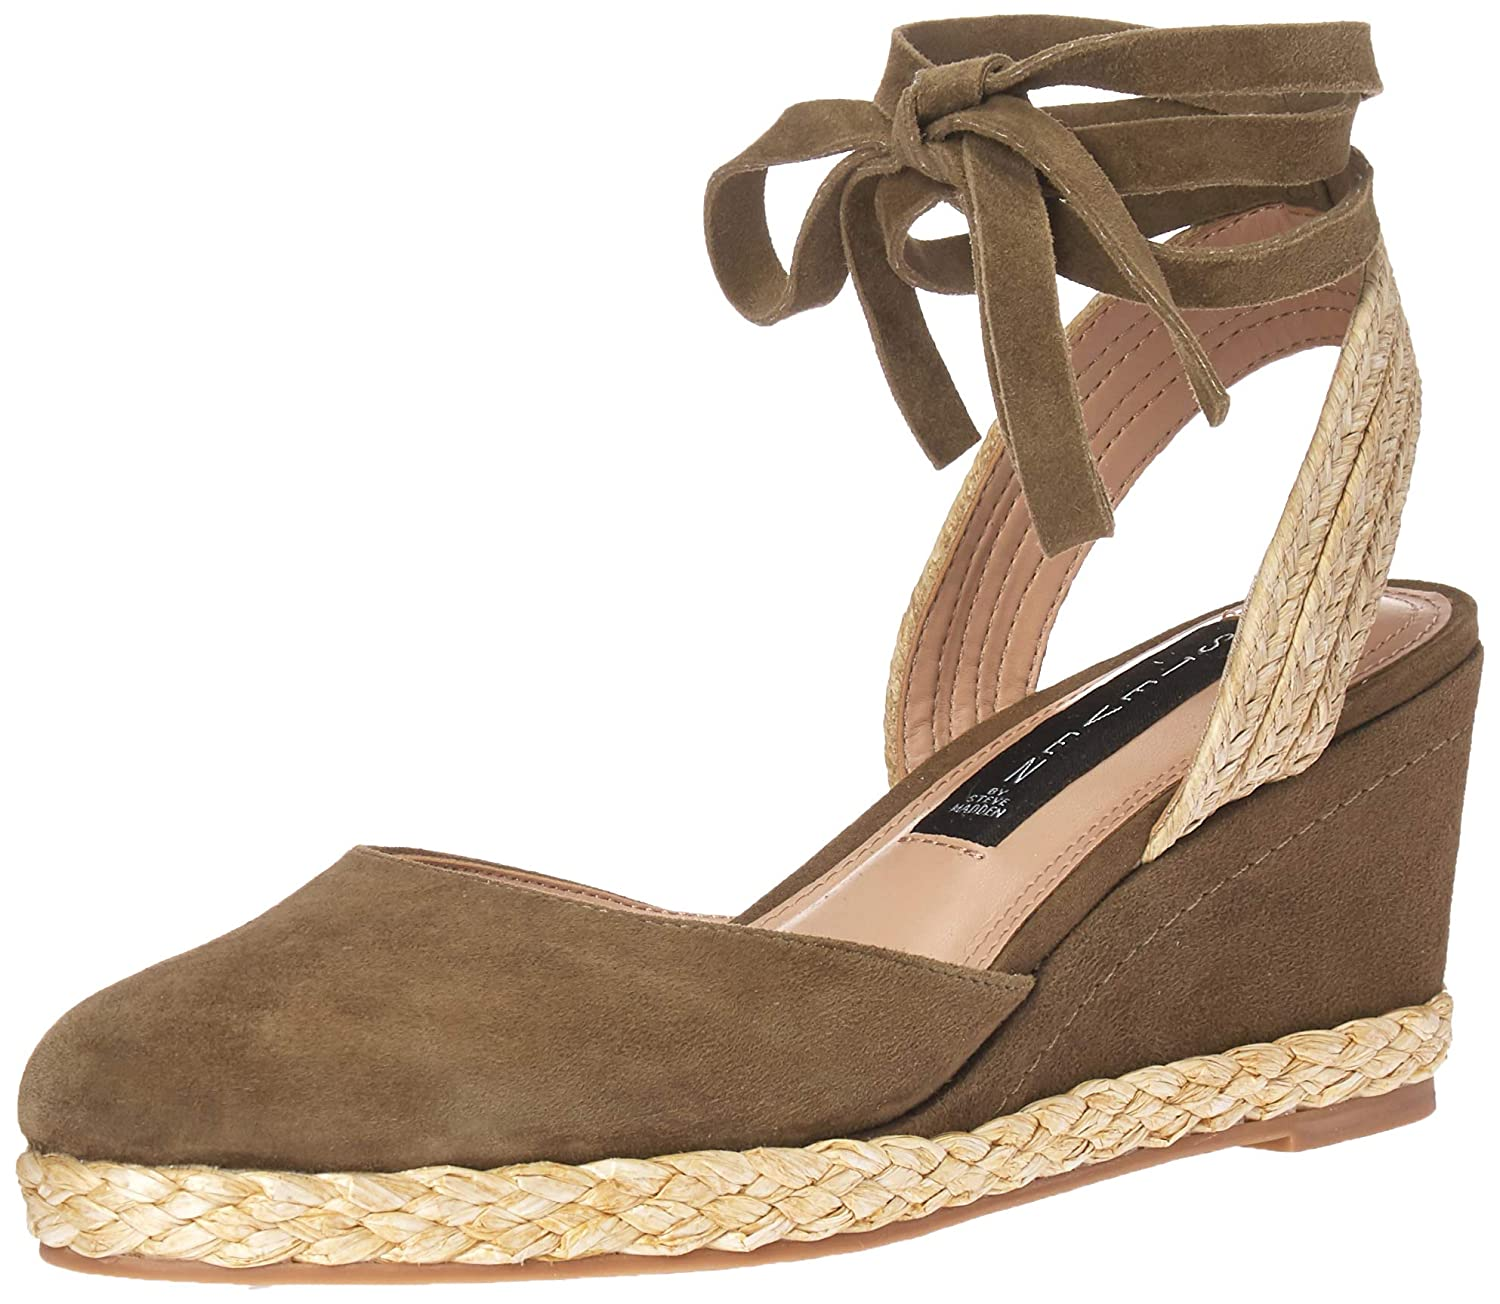 Olive Suede STEVEN by Steve Madden Womens Charly Sandal